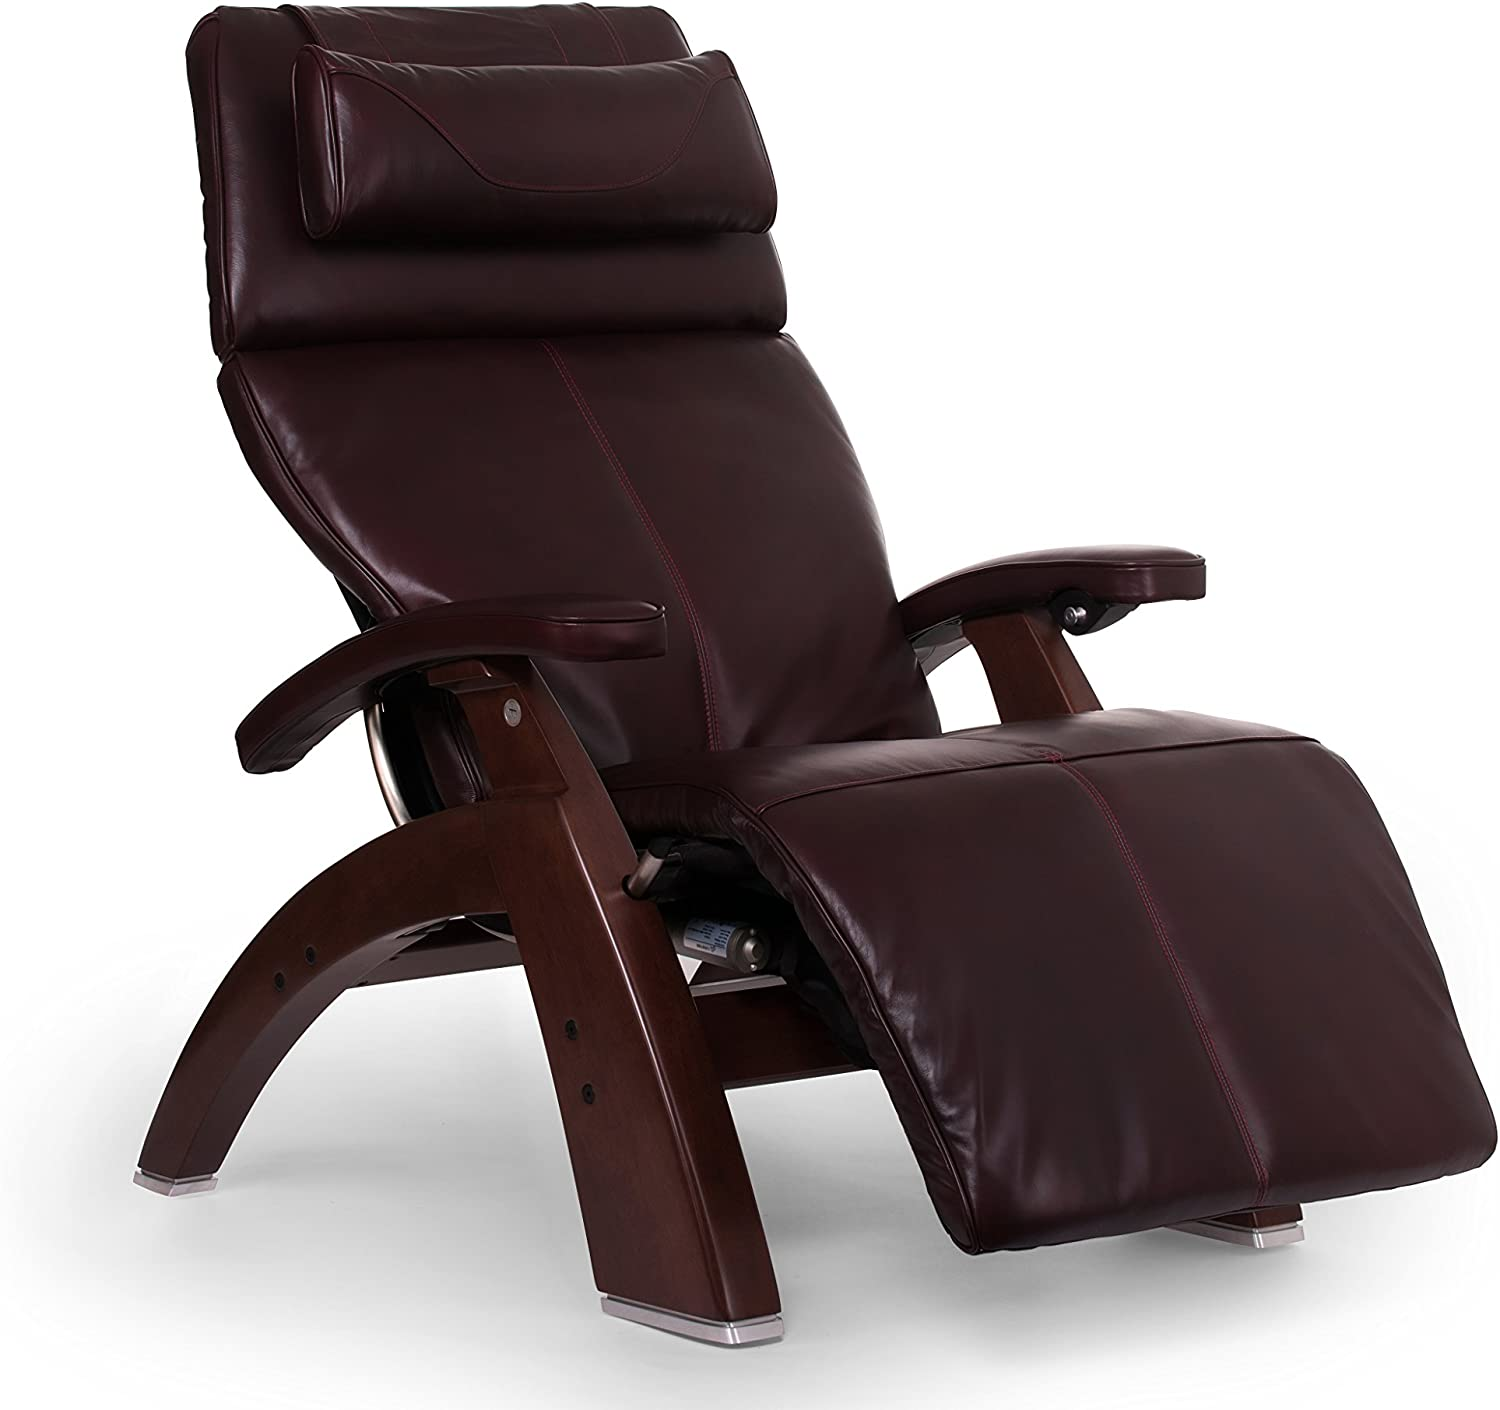 "Perfect Chair ""PC-610 Omni-Motion Classic"" Premium Full Grain Leather Zero Gravity Recliner, Burgundy"